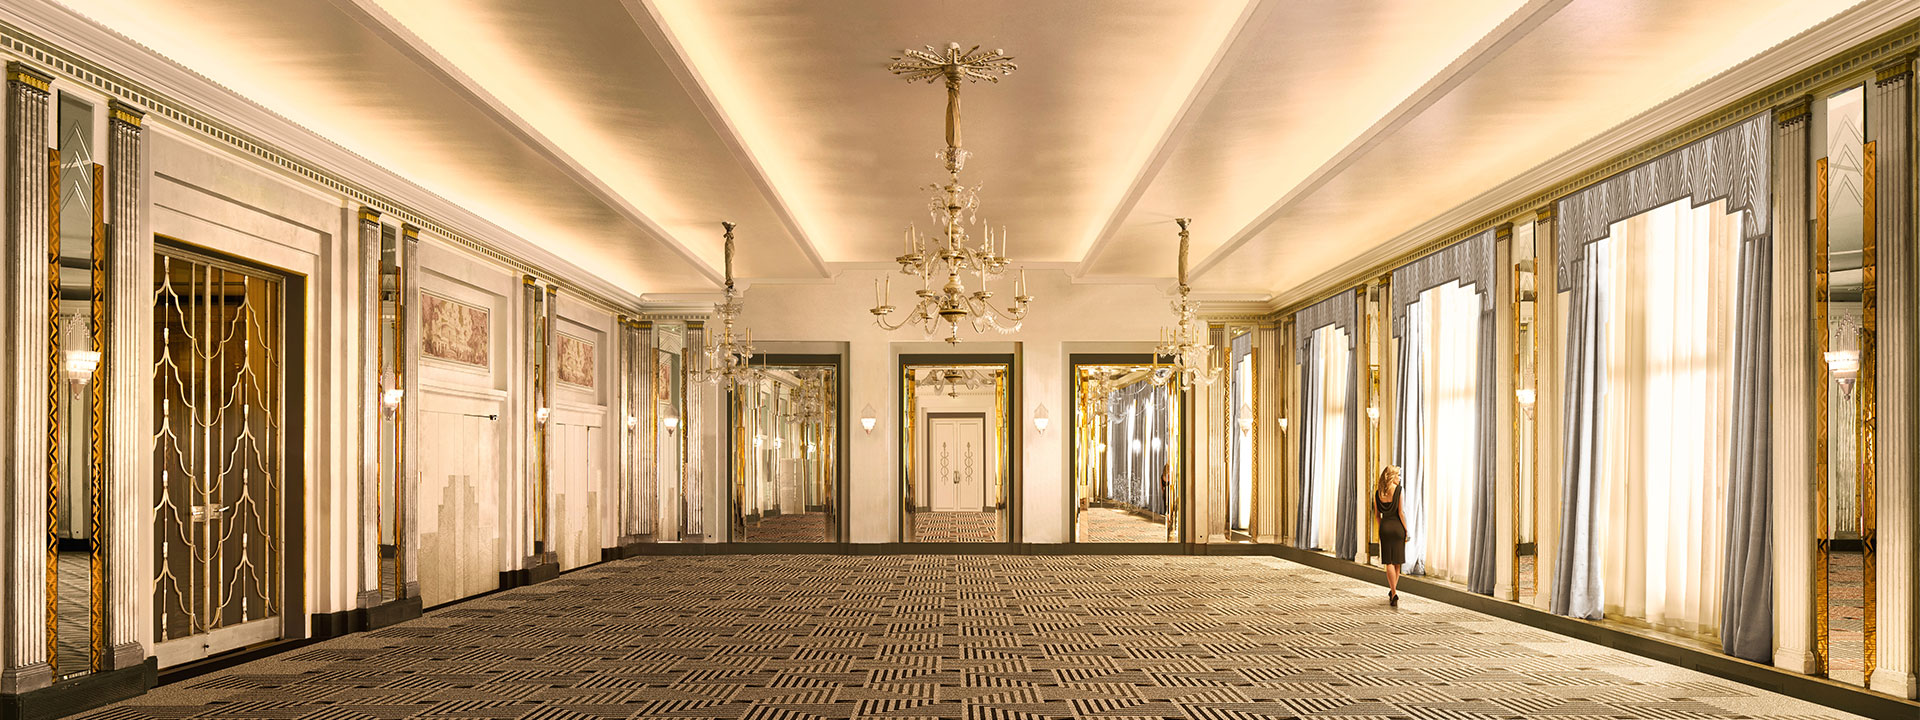 Claridge's ballroom CGI for 2020 renovation with chandelier and steeped ceiling detail